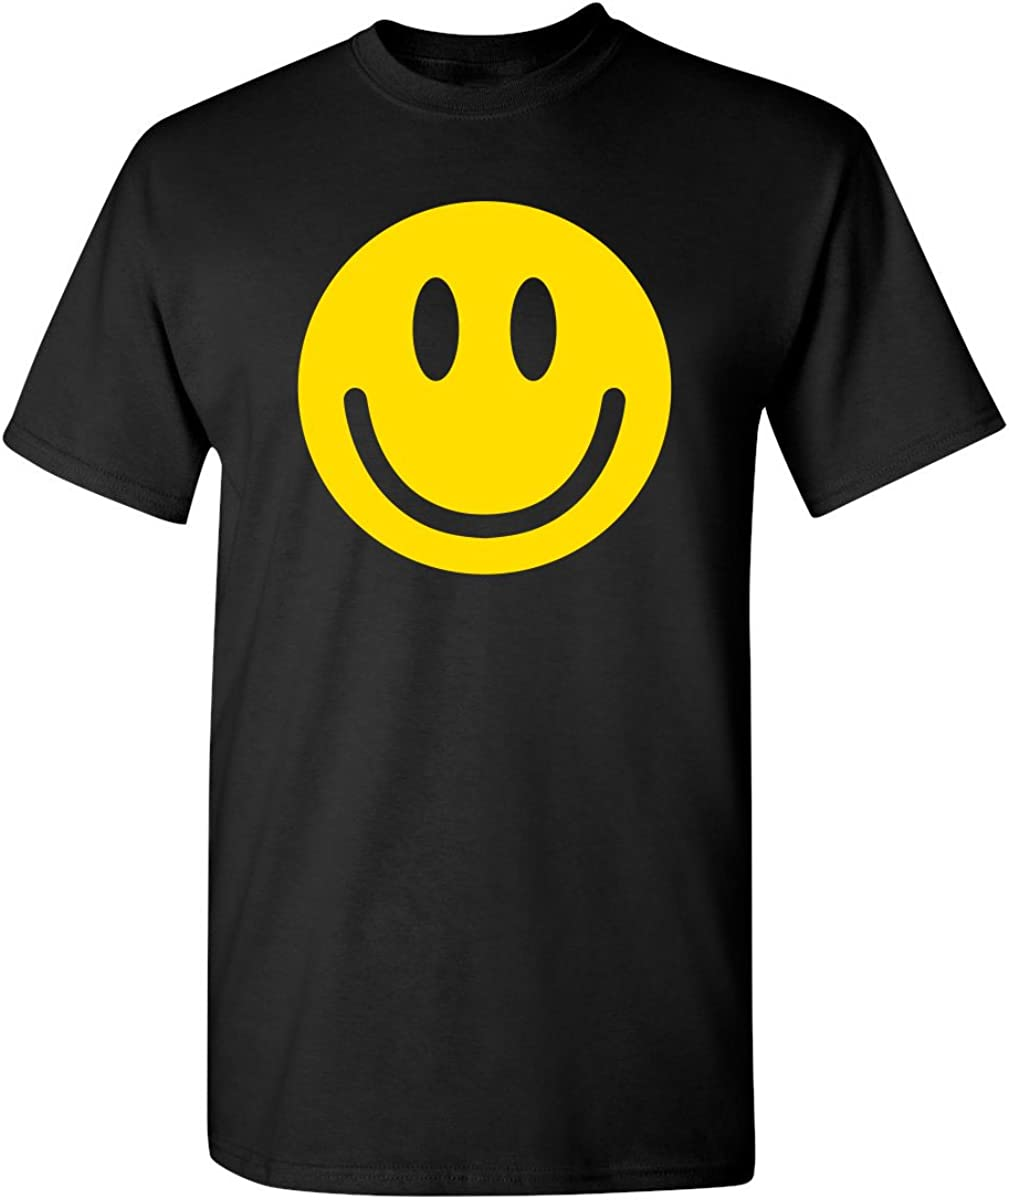 Smile Face Emoticons Novelty Graphic Sarcastic Happy Face Humor Funny T Shirt